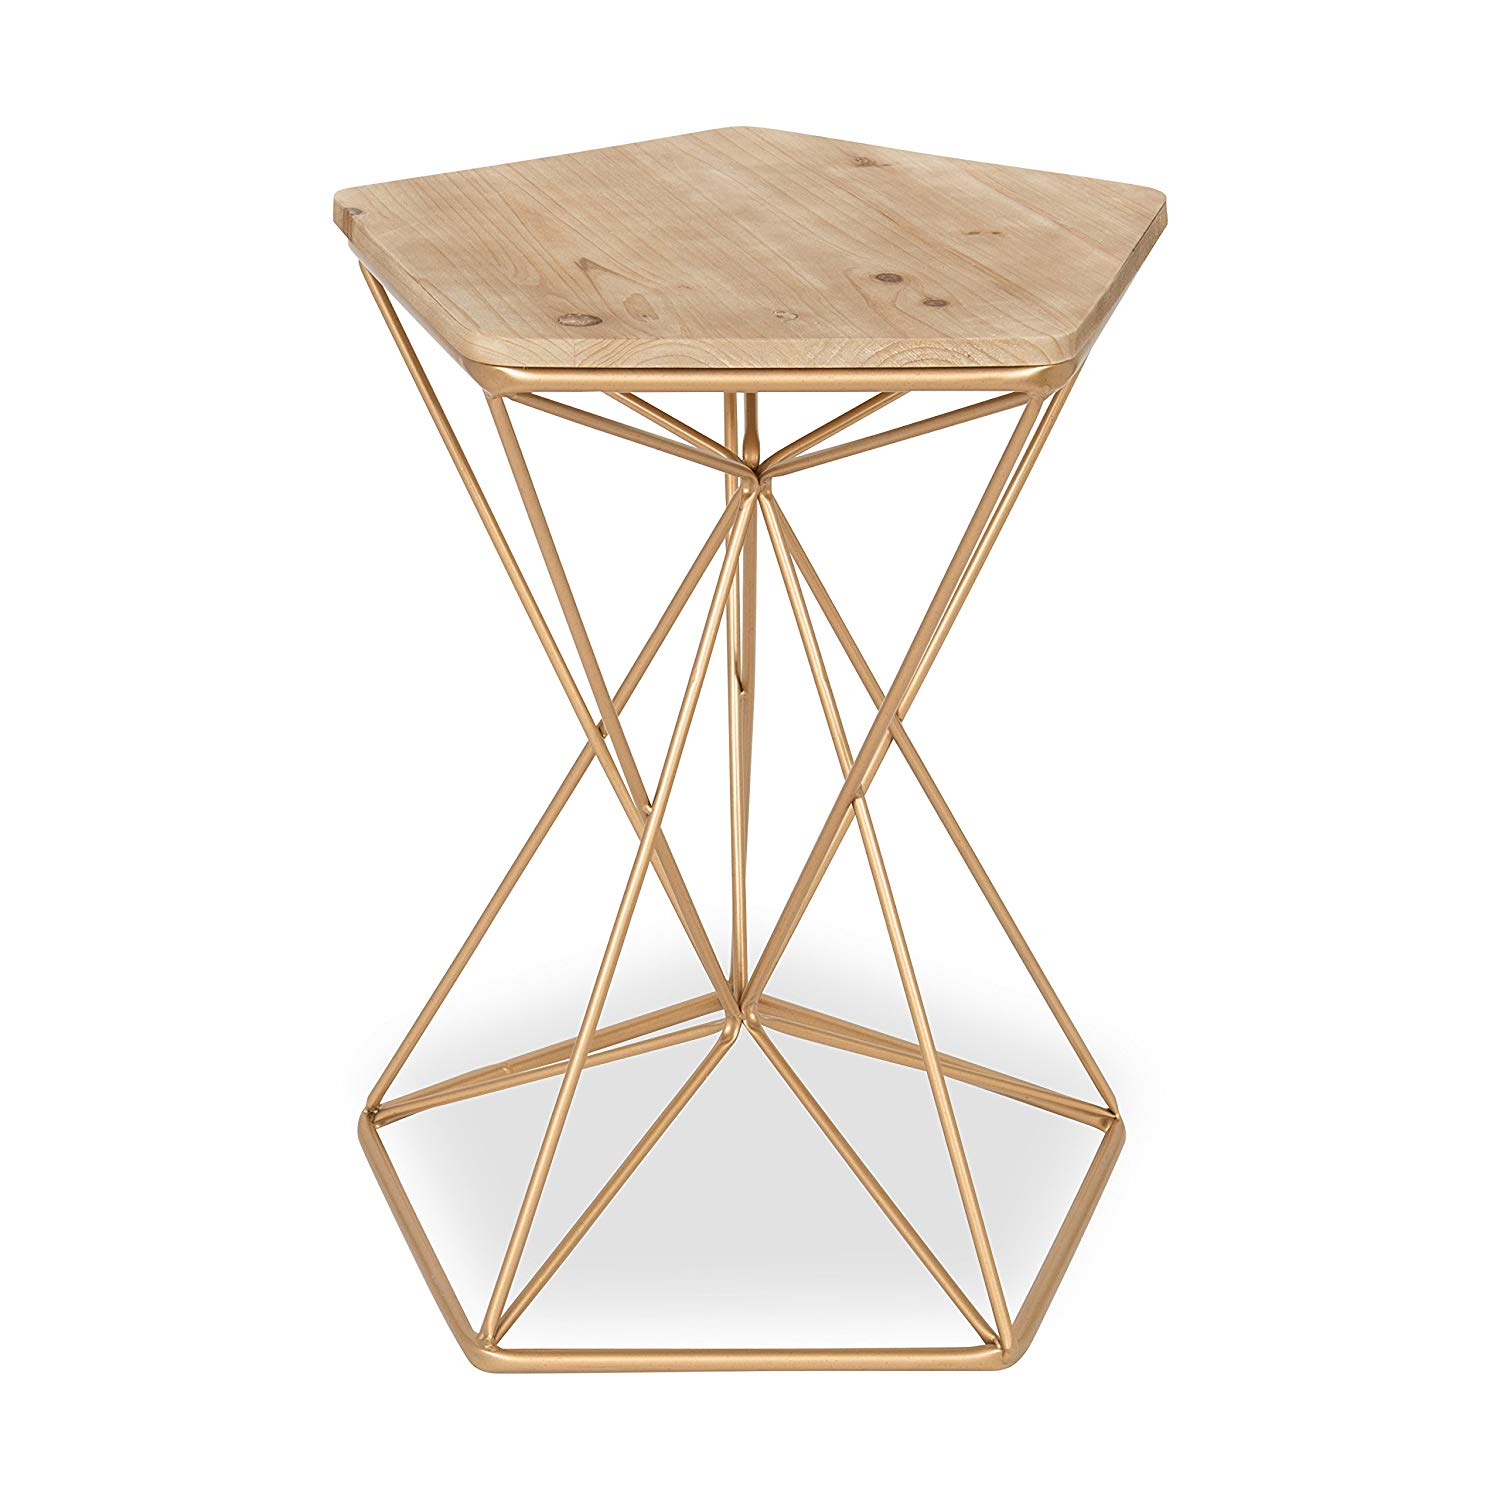 kate and laurel ulane metal side accent table with tables furniture natural wood top rose gold home kitchen tall mirrored round garden cover vintage half moon whalen cooler coffee